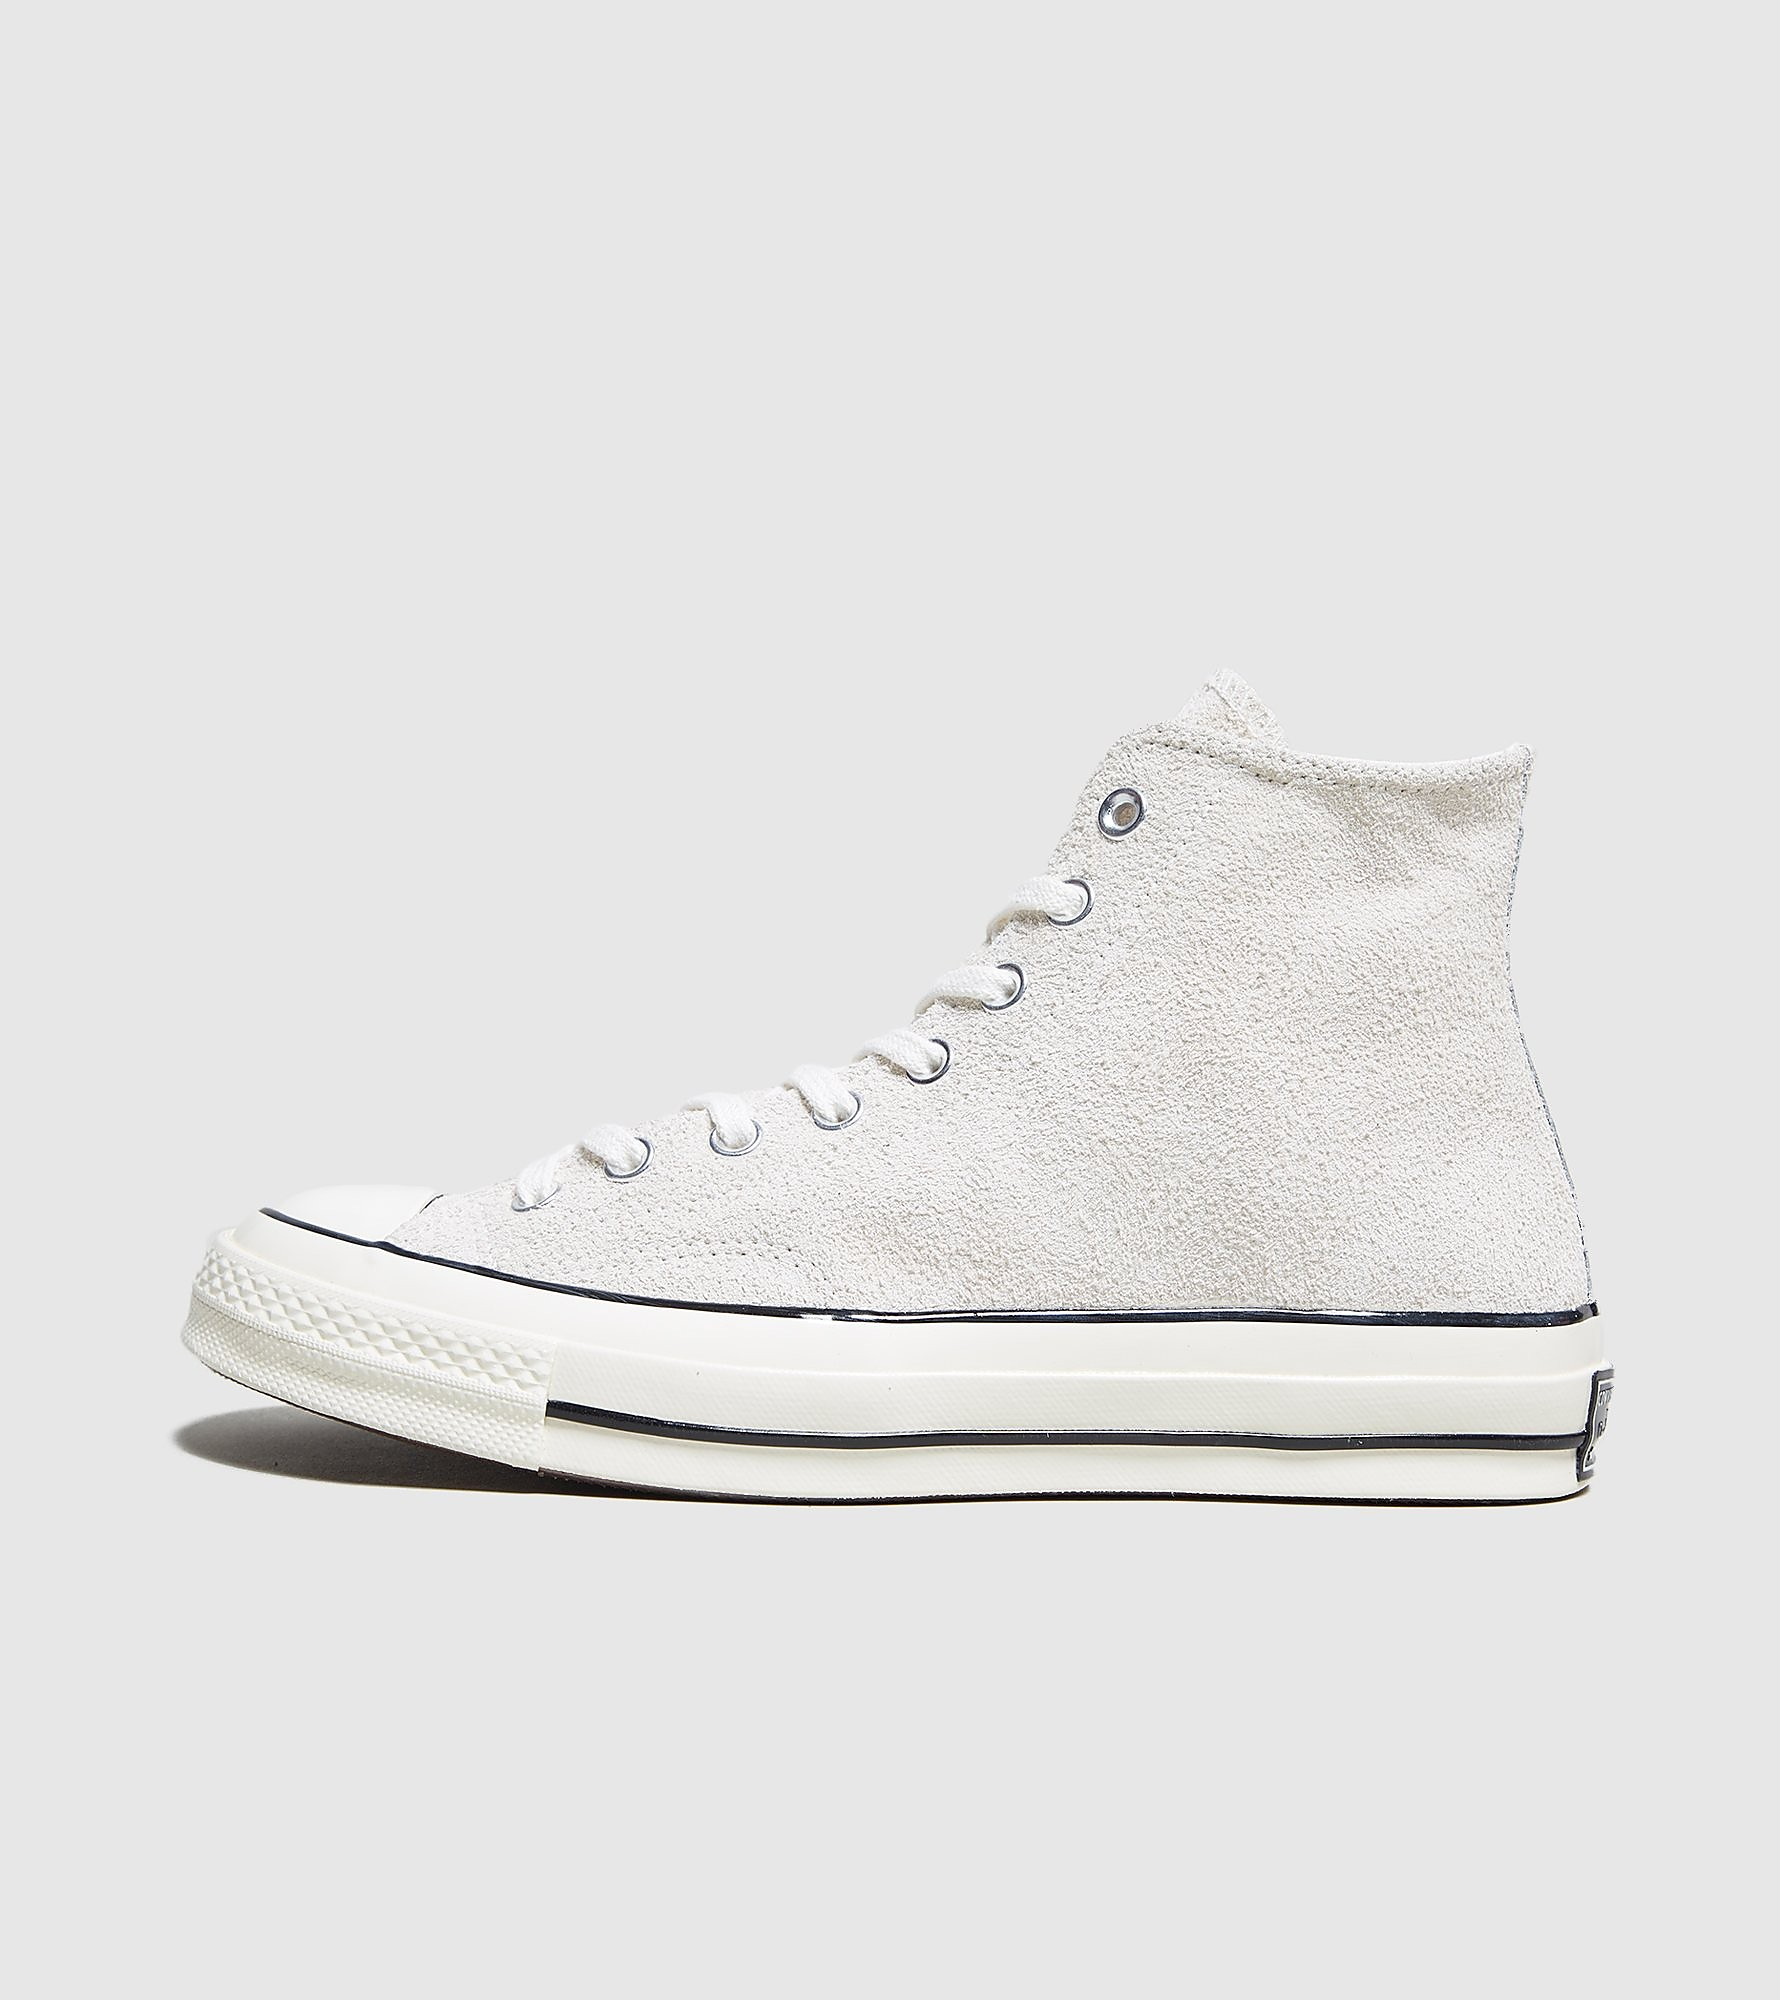 Converse All Star High 70's